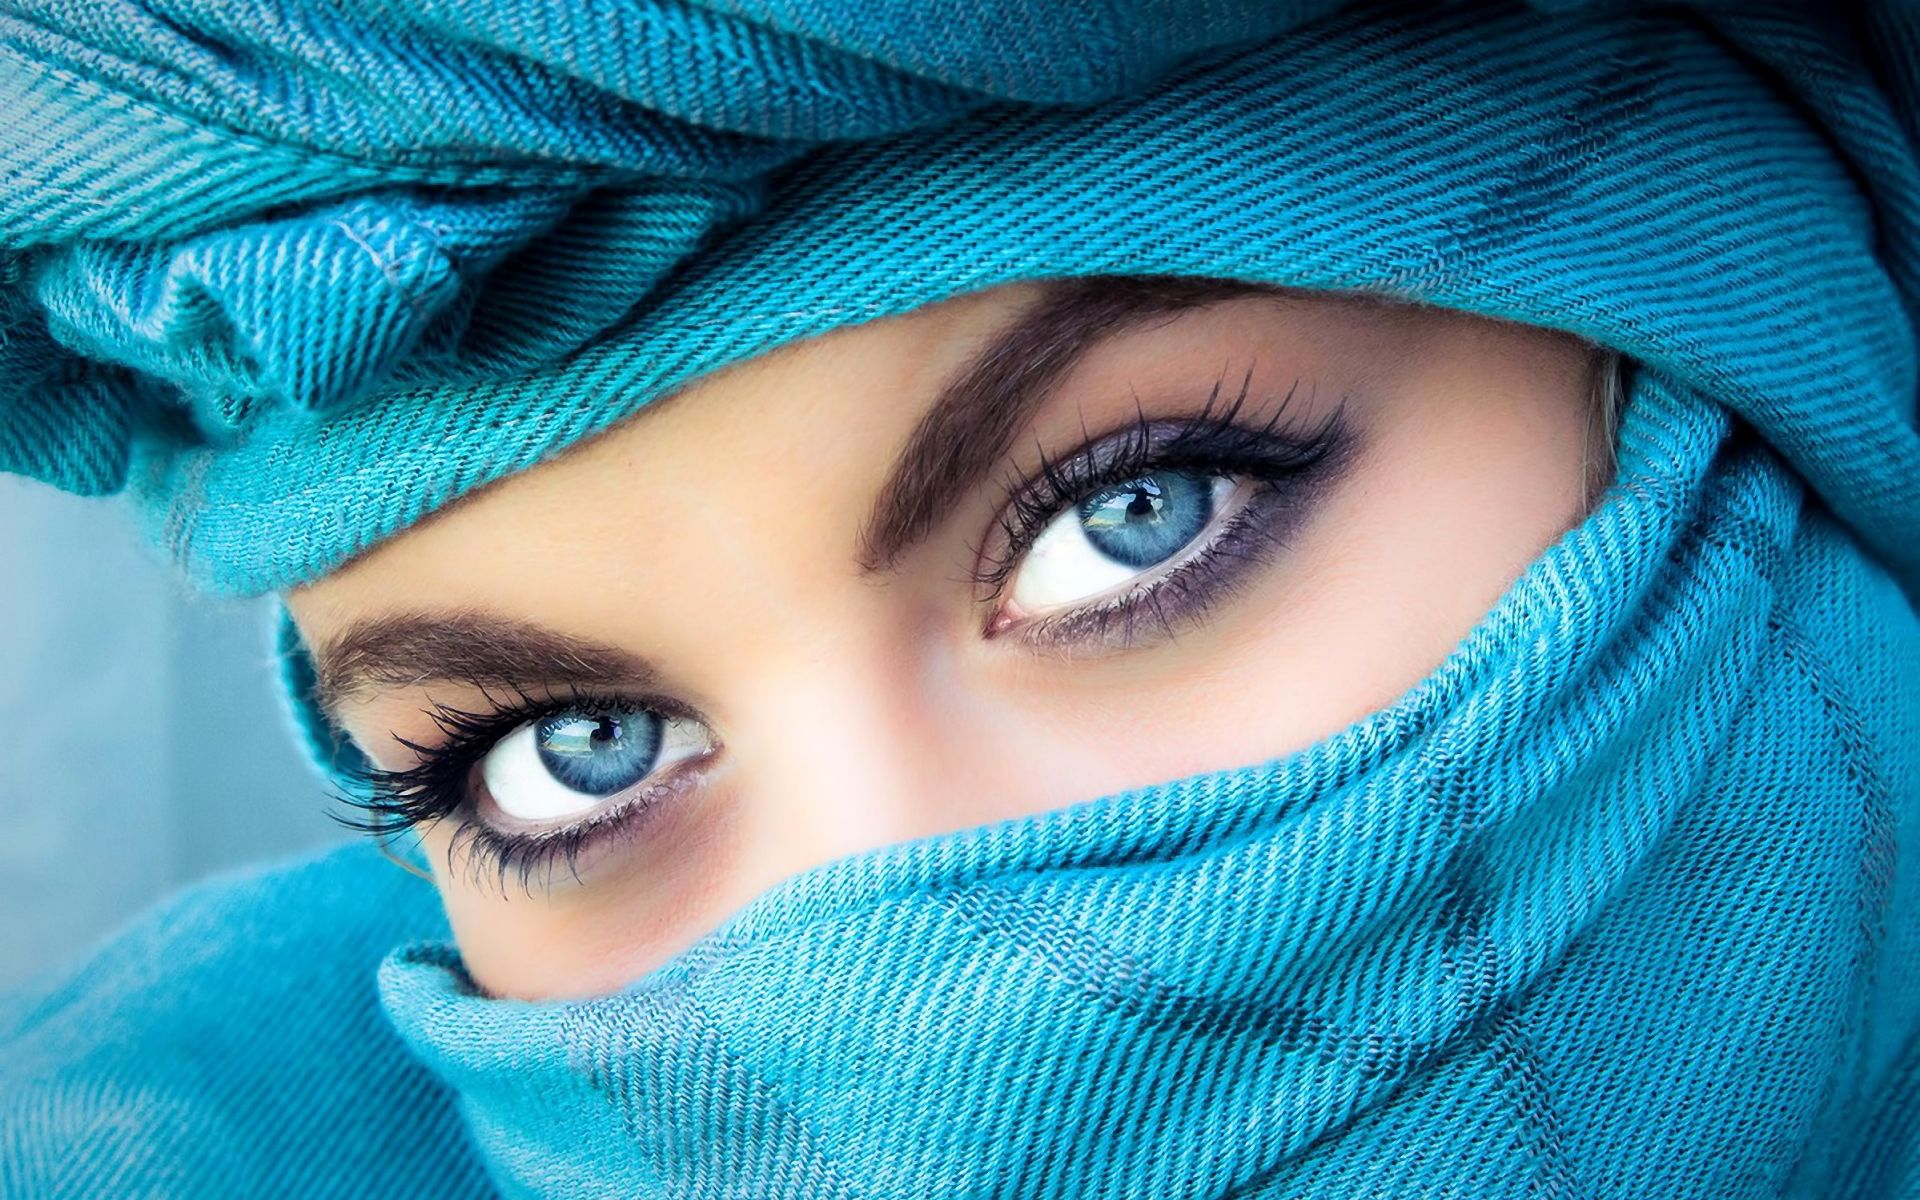 Beautiful Blue Eye Girl Image Beautiful Eyes Images Most